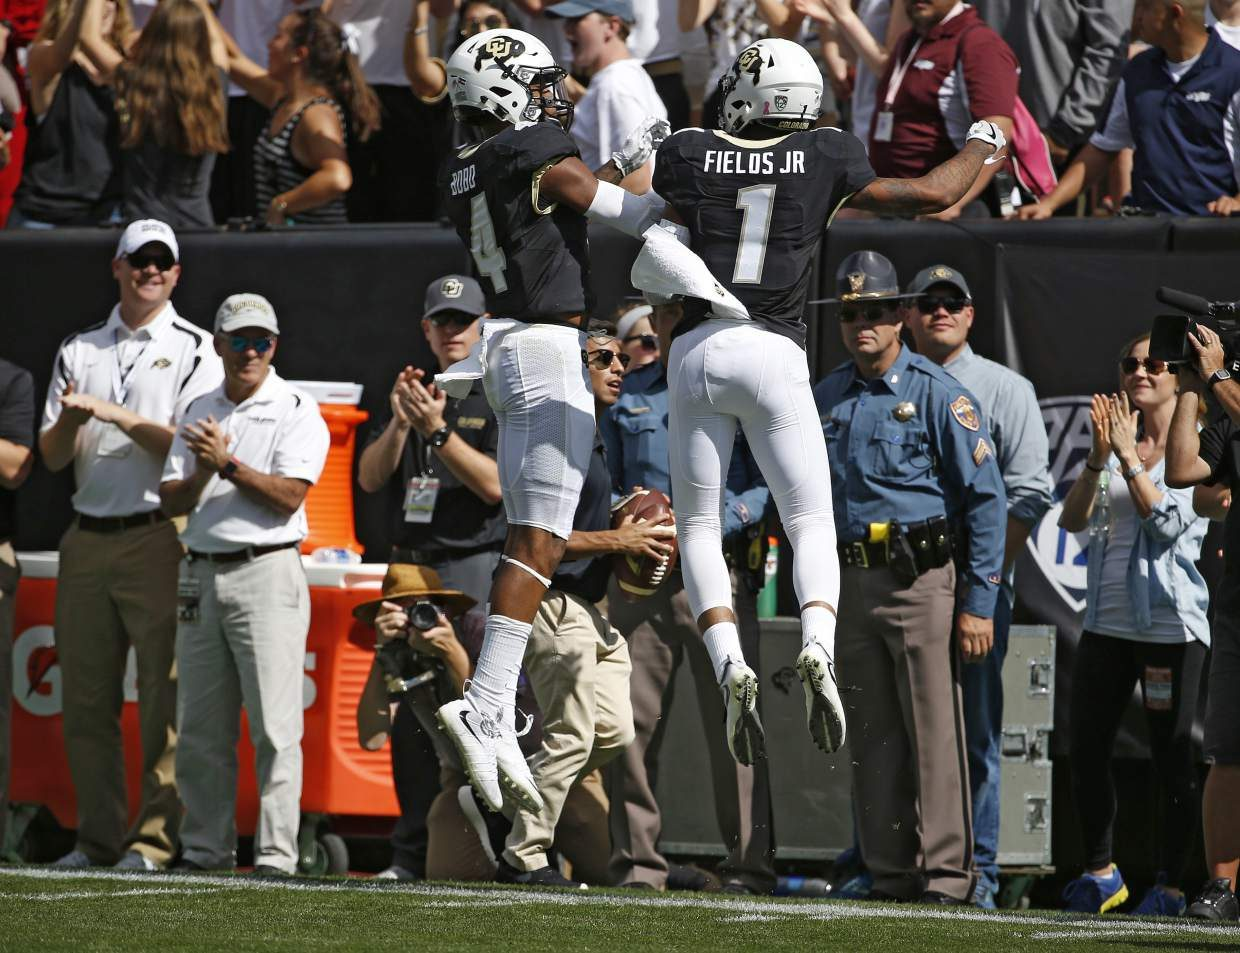 Colorado wide receiver Shay Fields (1) celebrates with fellow wide receiver Bryce Bobo, (4) after Fields ran in a catch for a touchdown against Oregon State during the first half of an NCAA college football game in Boulder, Colo., Saturday, Oct. 1, 2016. (AP Photo/Brennan Linsley)